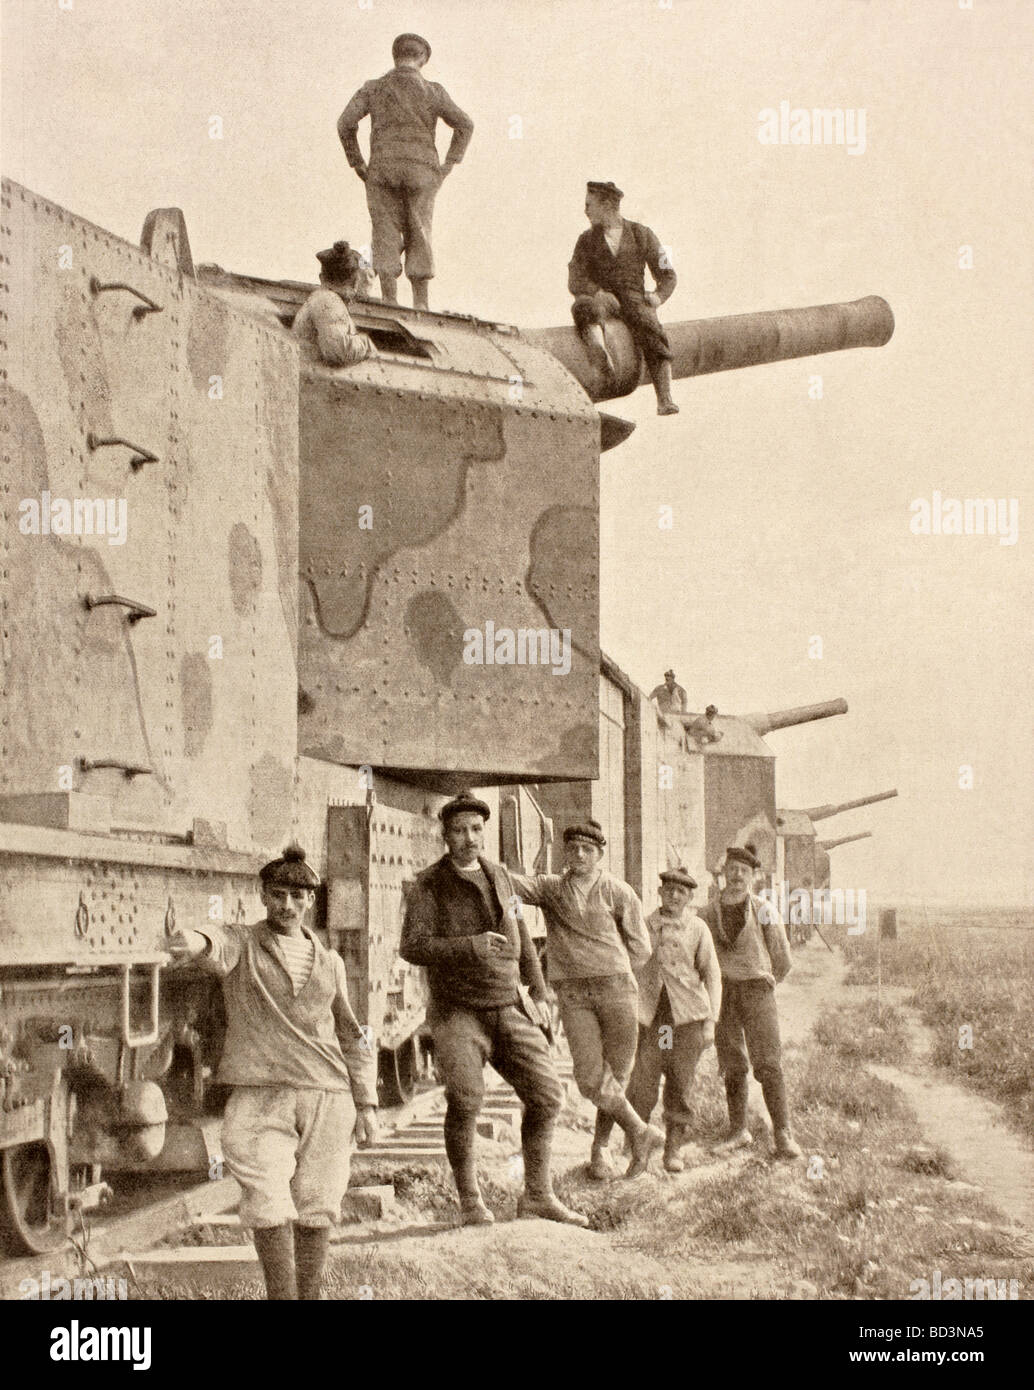 An armoured train mounted with 190 calibre cannons. - Stock Image